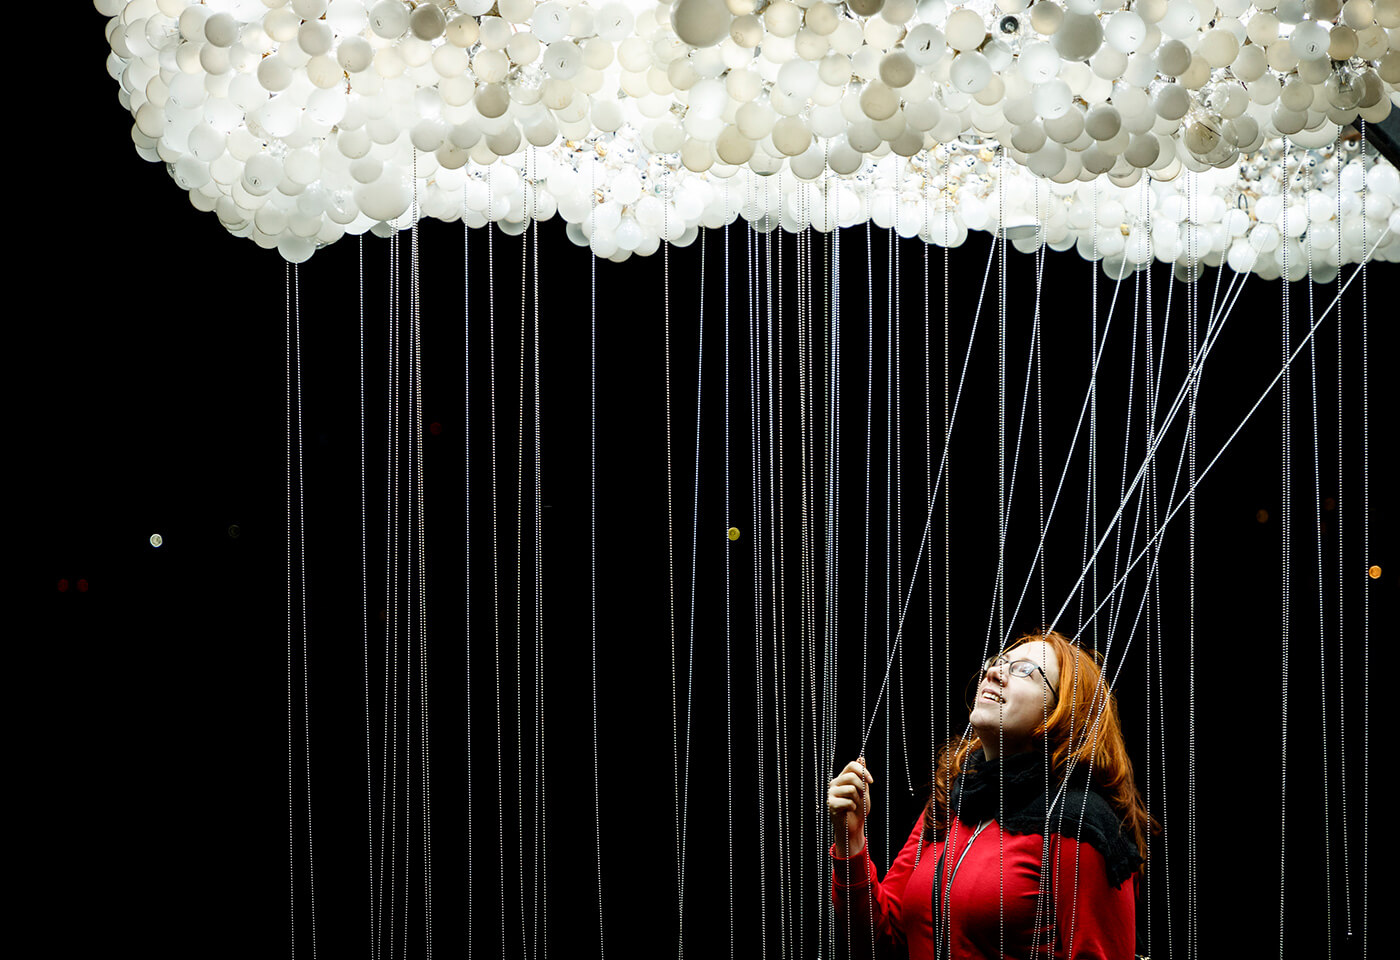 Woman pictured underneath a large group of lightbulbs on strings